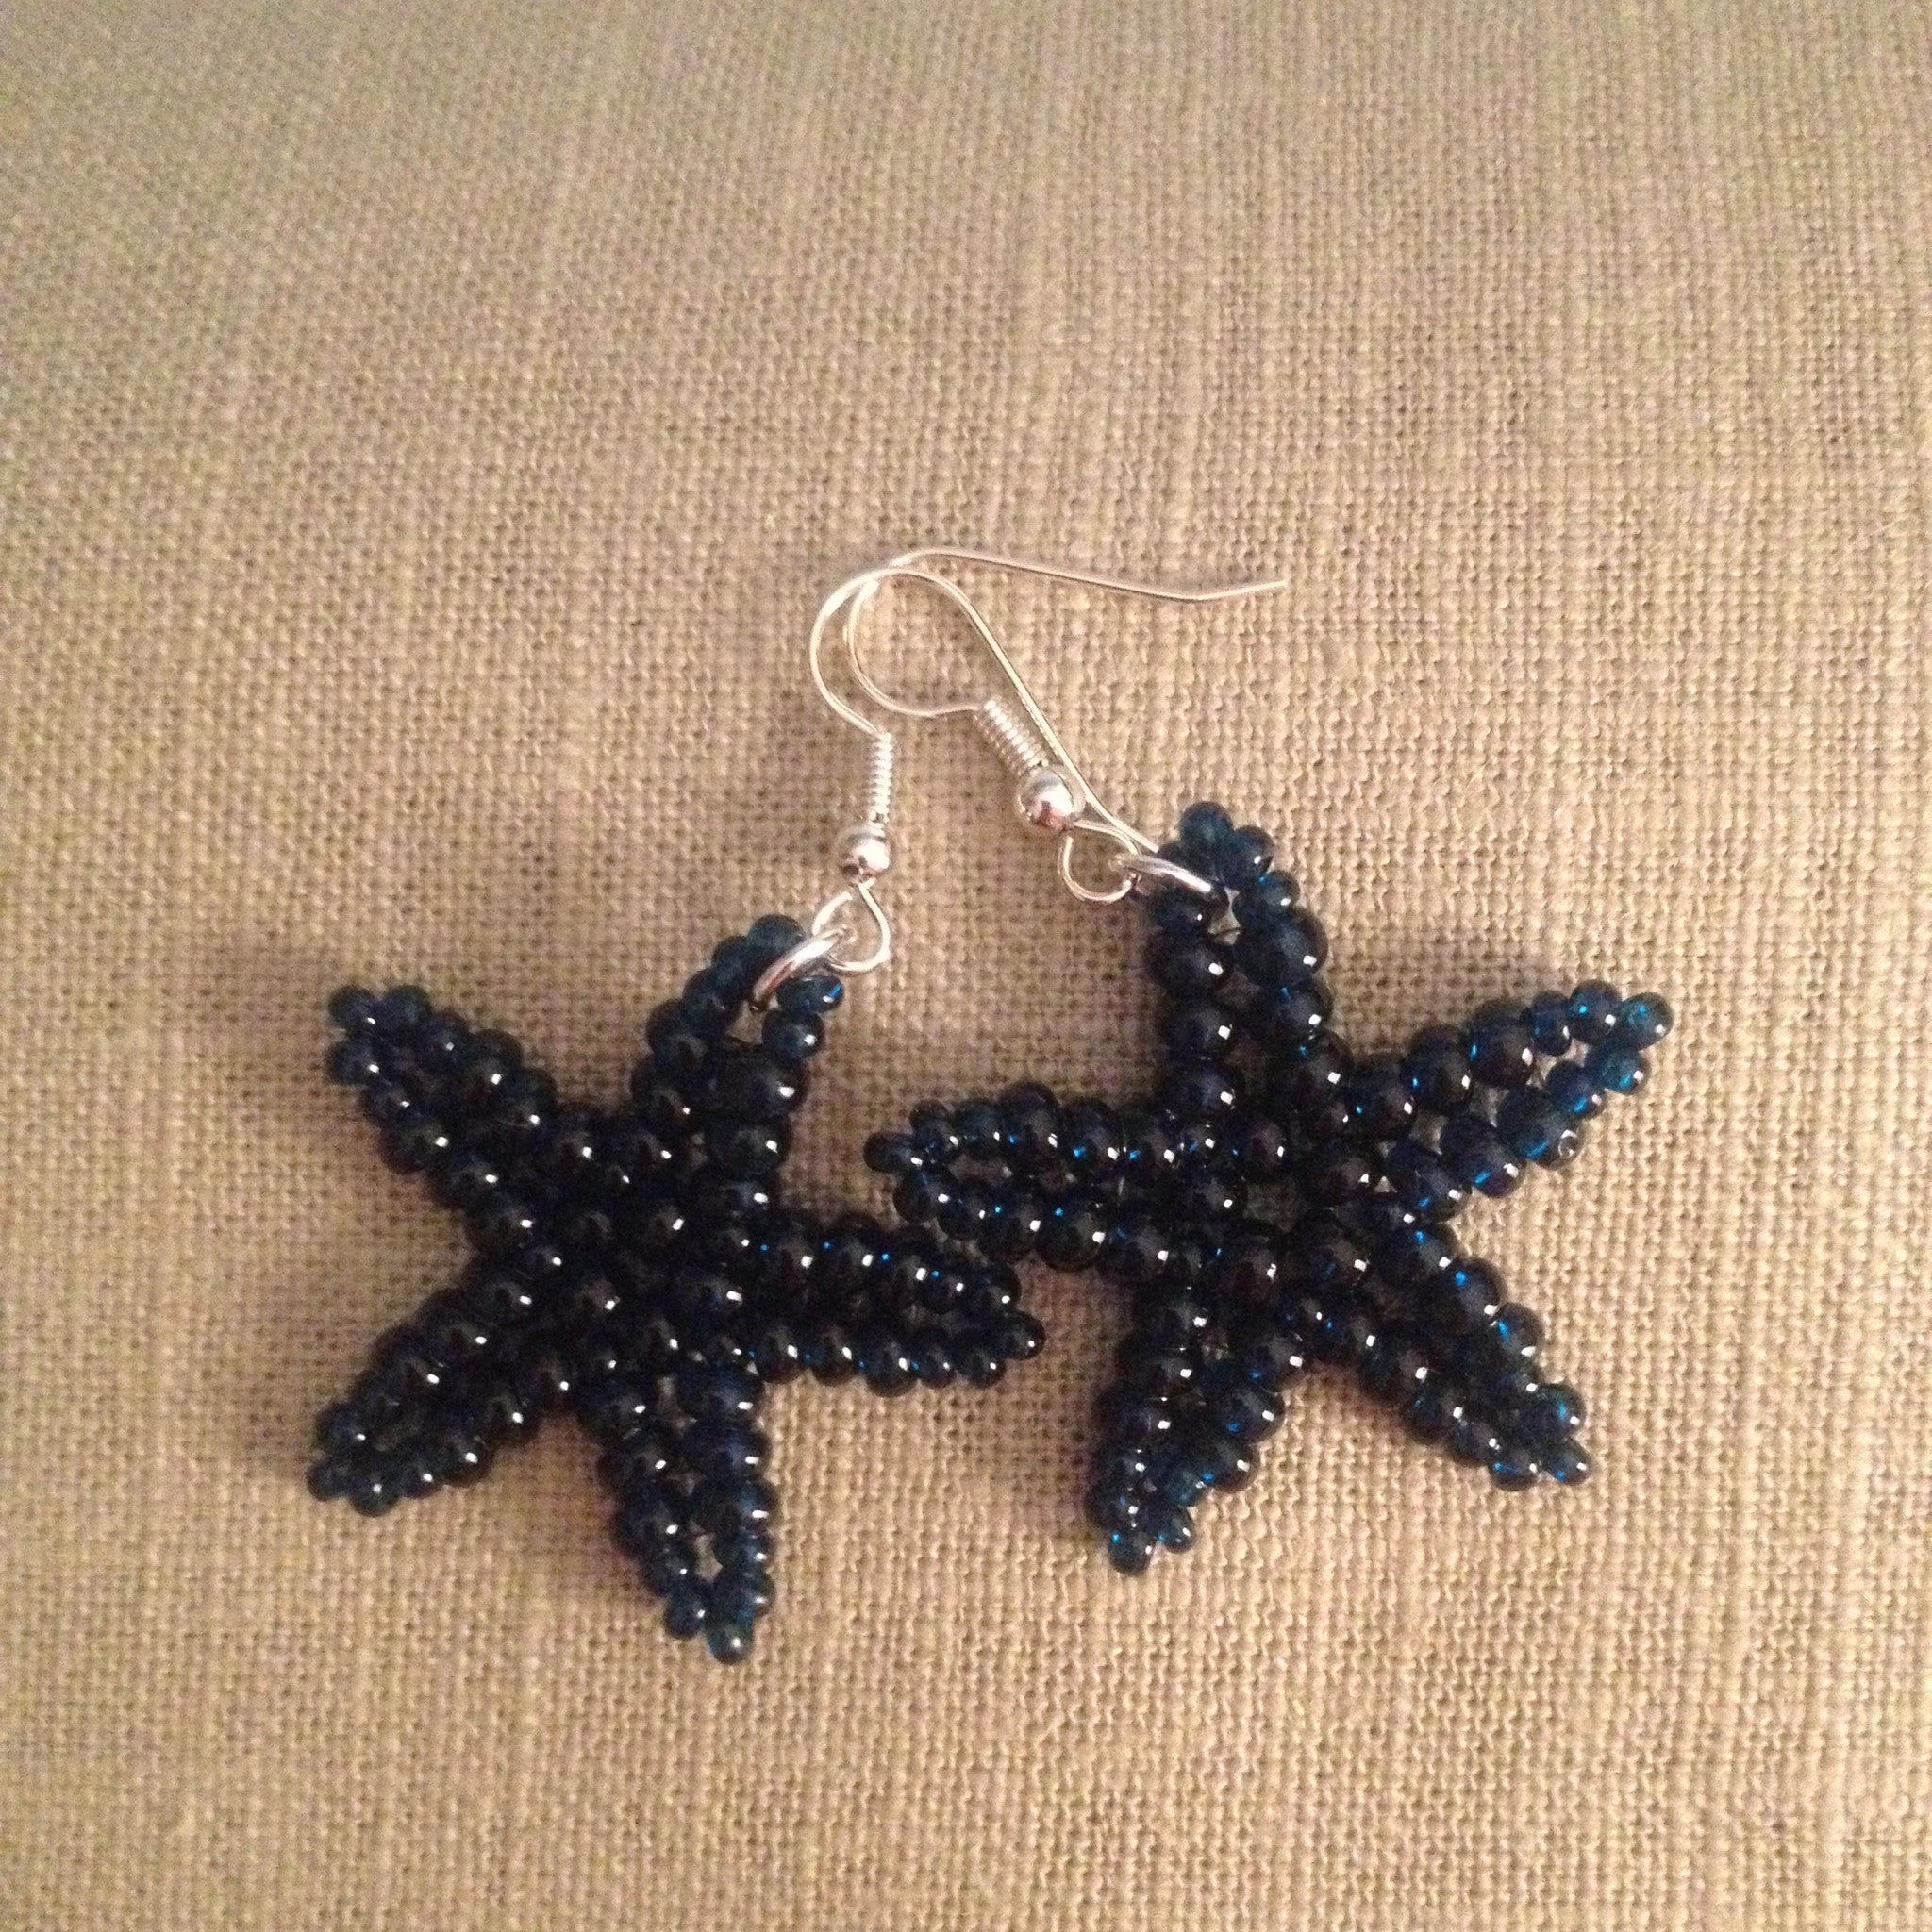 Starfish beaded handmade earriings in Navy blue resort cruise wear style beachy fun